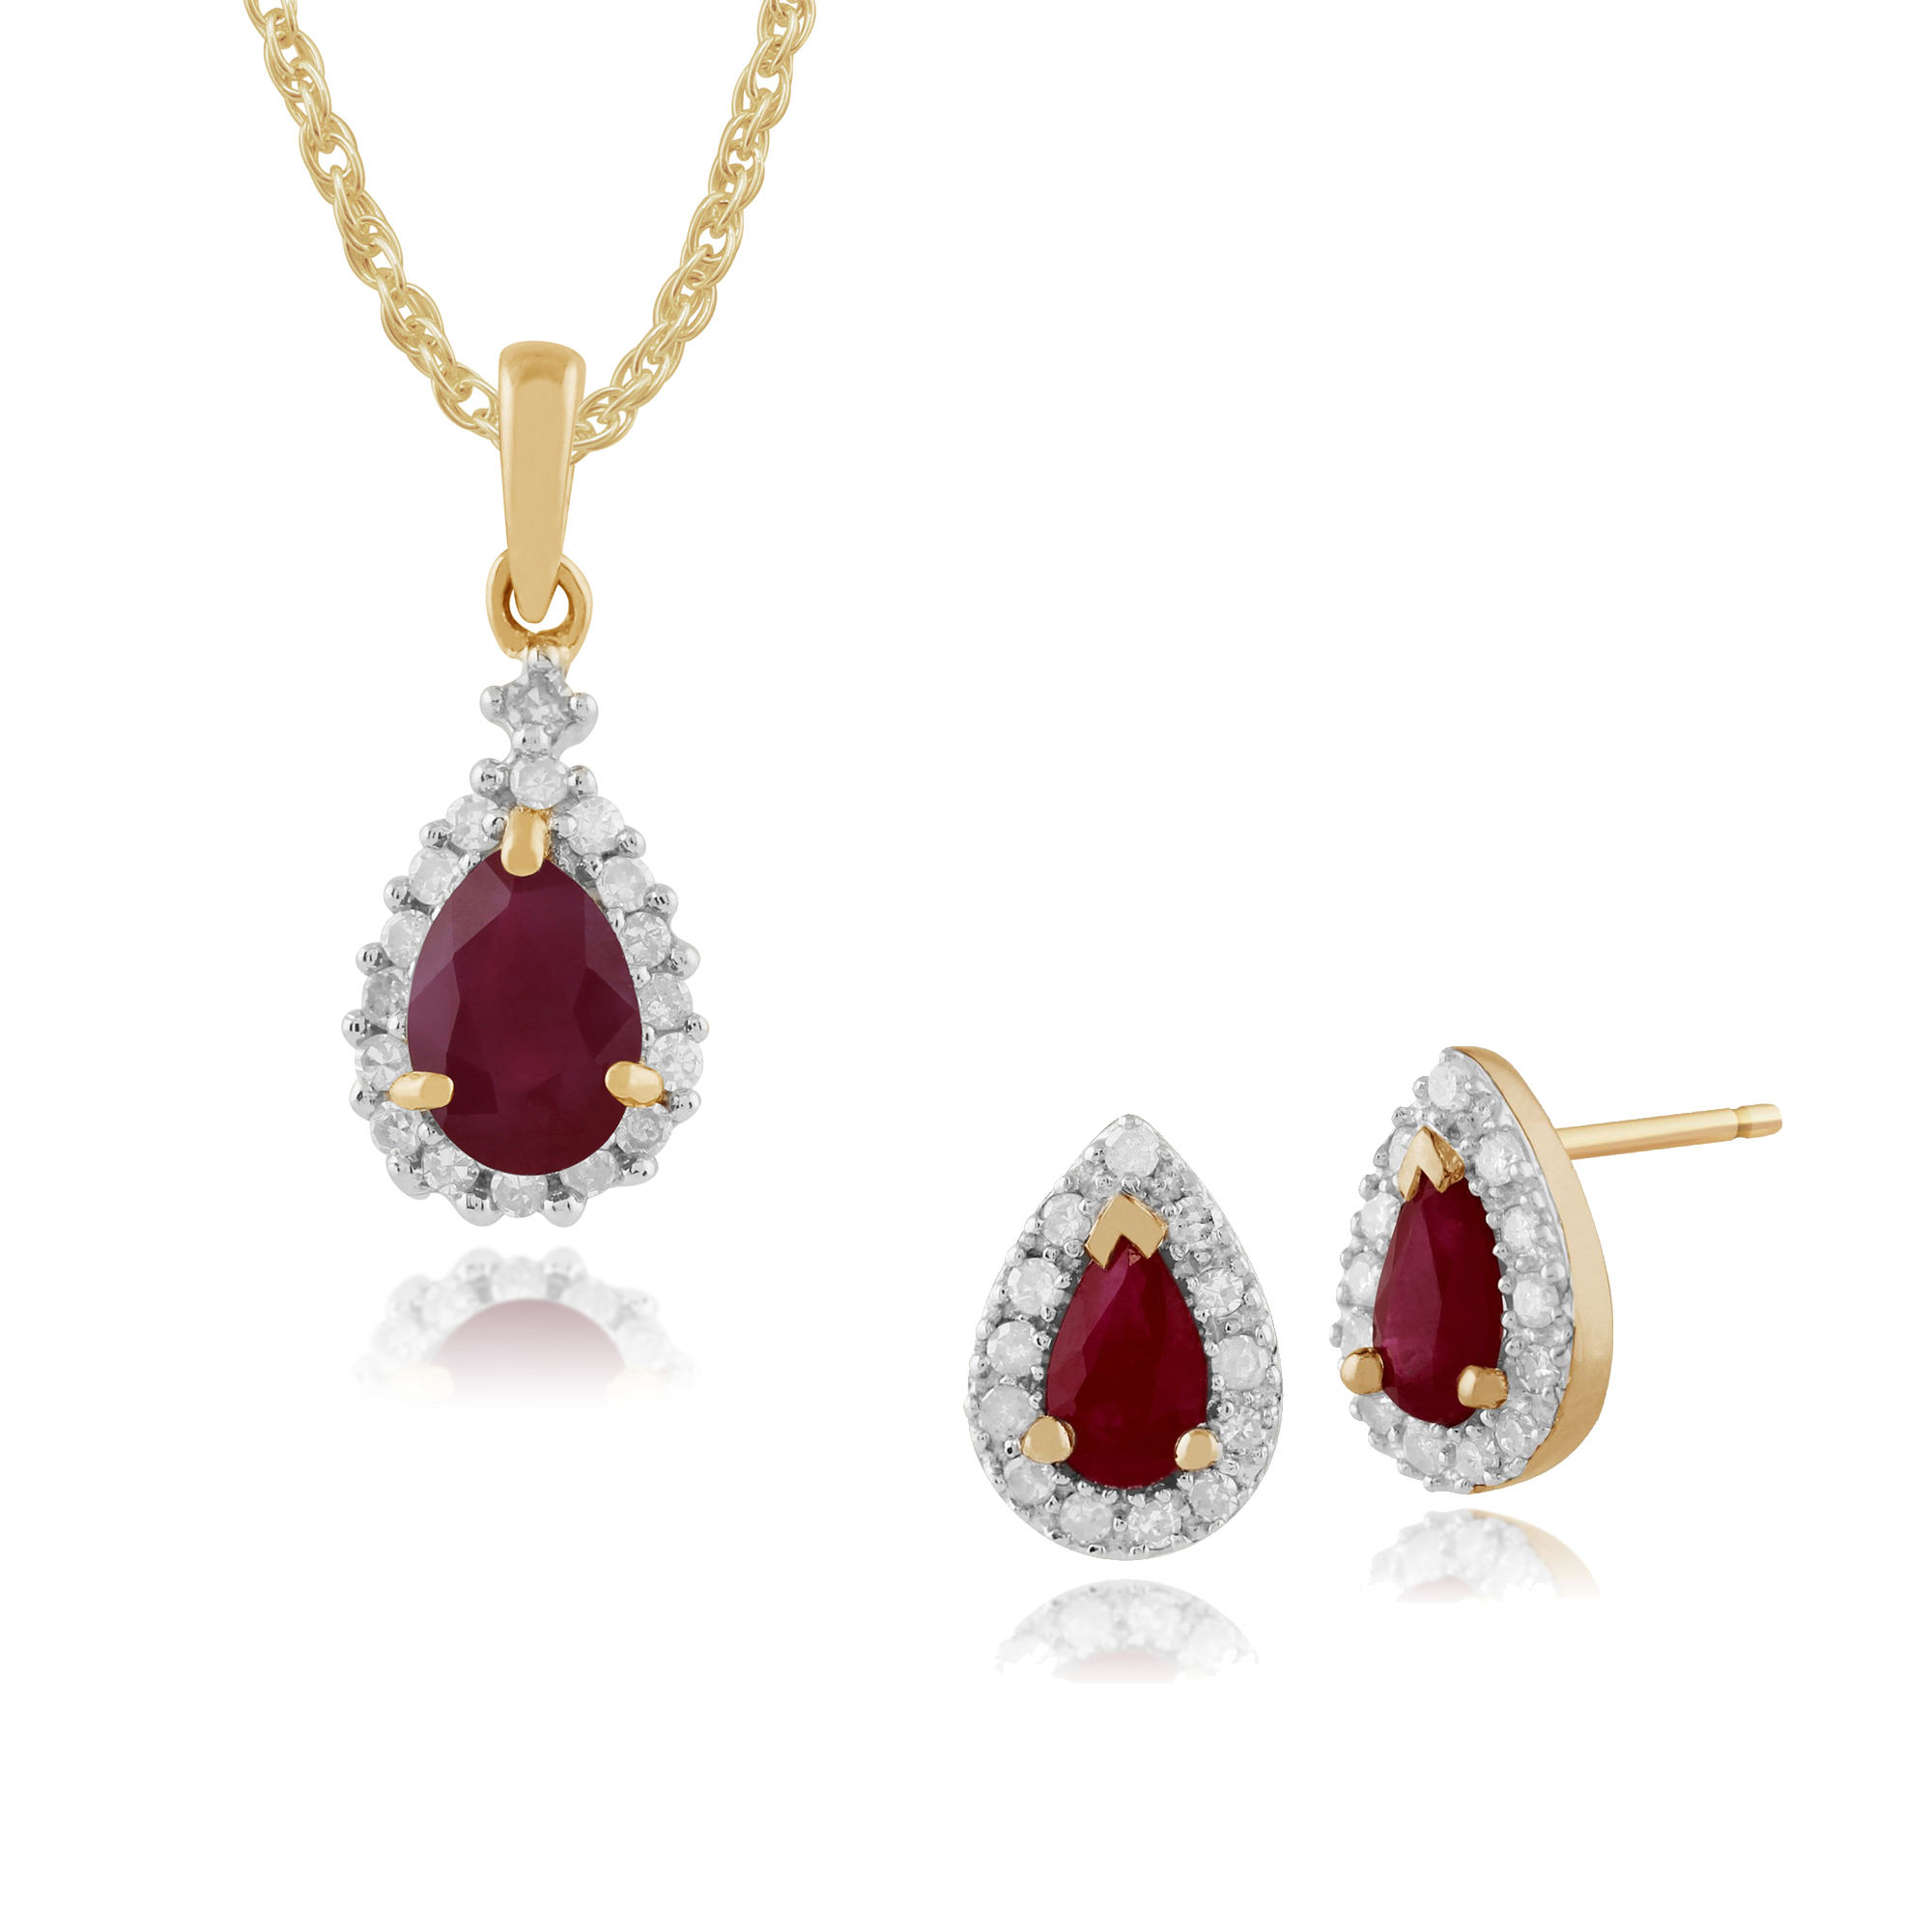 Details About Gemondo 9ct Yellow Gold Ruby & Diamond Cluster Stud Earrings & 45cm Necklace Set With 2019 Ruby And Diamond Cluster Necklaces (View 18 of 25)